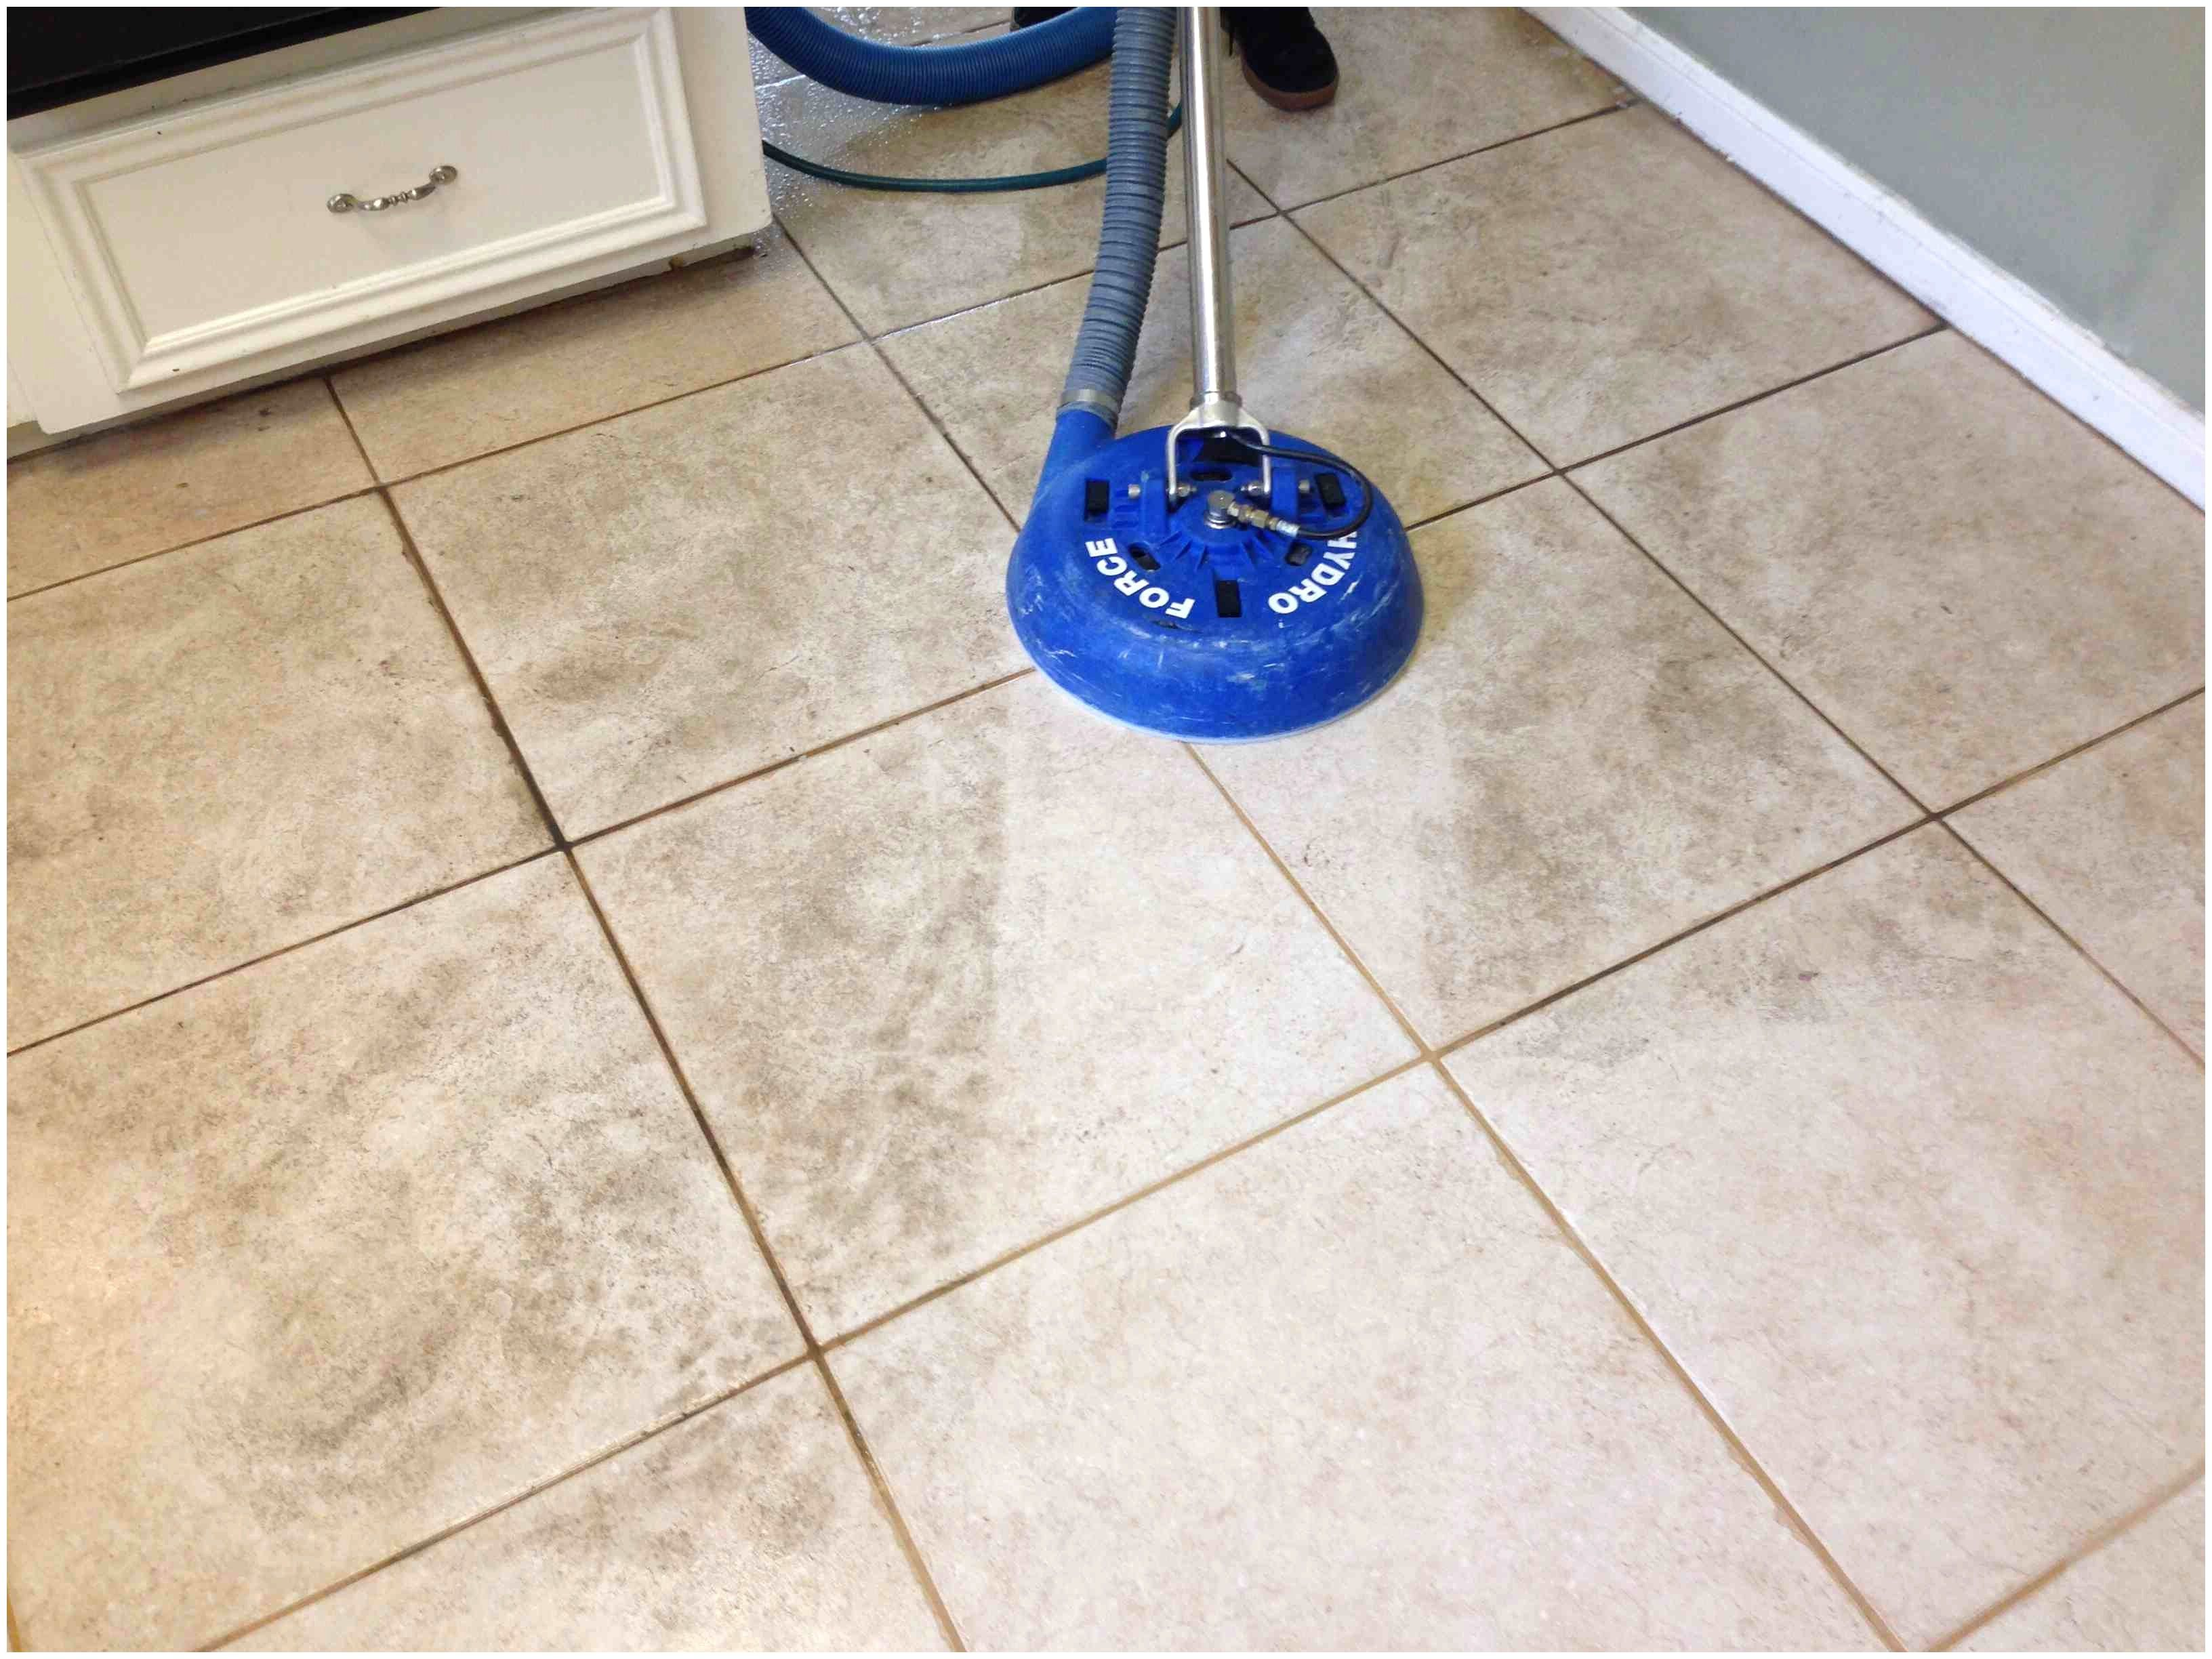 Perfect Cleaning Ceramic Tile Floors Without Streaks And View In 2020 Ceramic Floor Tiles Cleaning Ceramic Tiles Tile Floor Cleaner